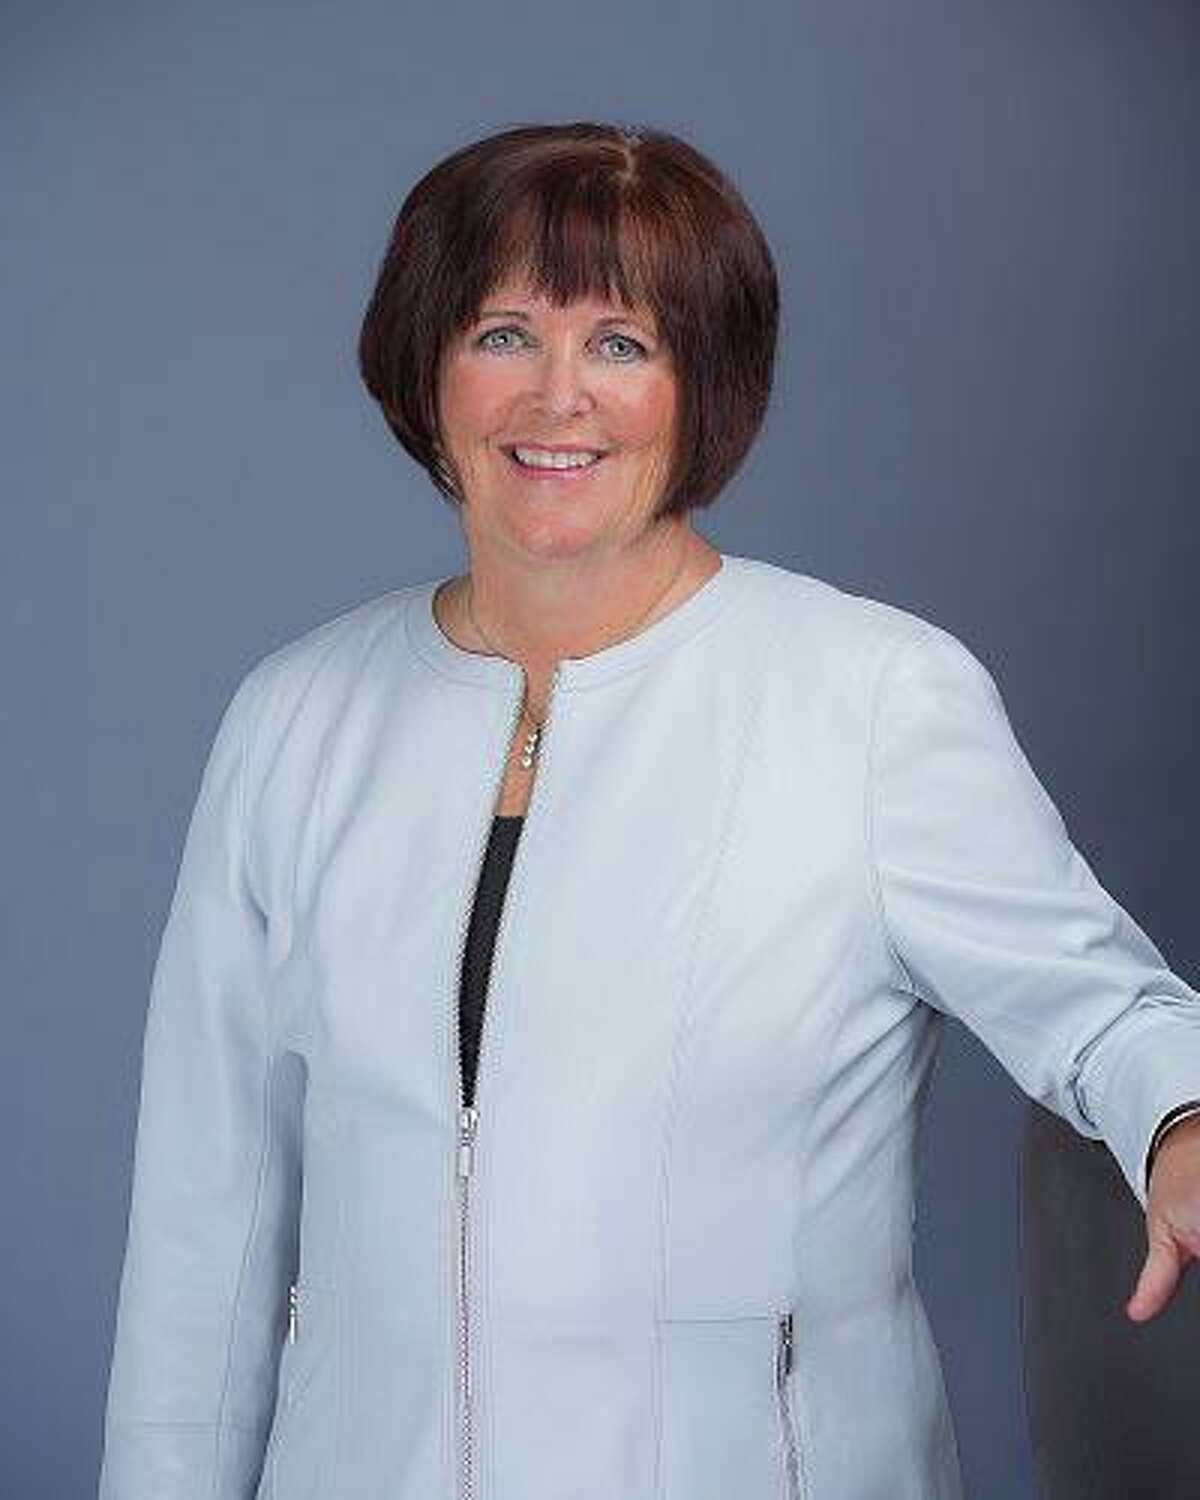 Synchrony Chief Executive Officer Margaret Keane will step down as the company's CEO and become its new executive chairwoman, the company announced on Tuesday, Jan. 12, 2021.